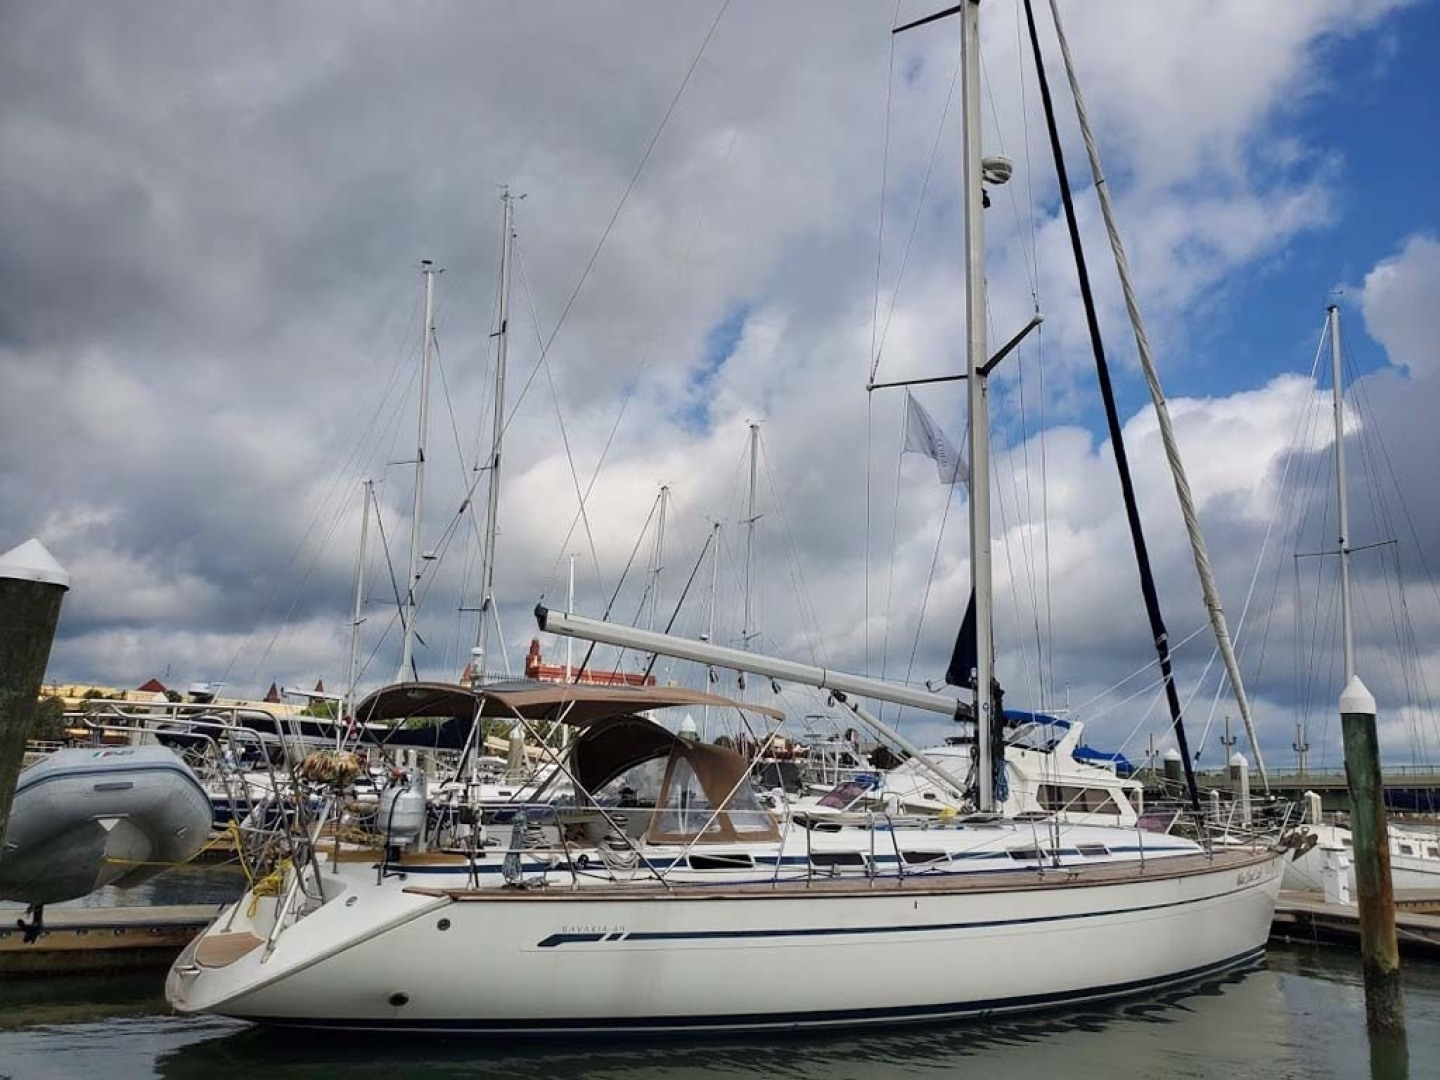 Bavaria-49 2003-BLUE CLOUD LADY Jacksonville-Florida-United States-Starboard Side View-1412460 | Thumbnail